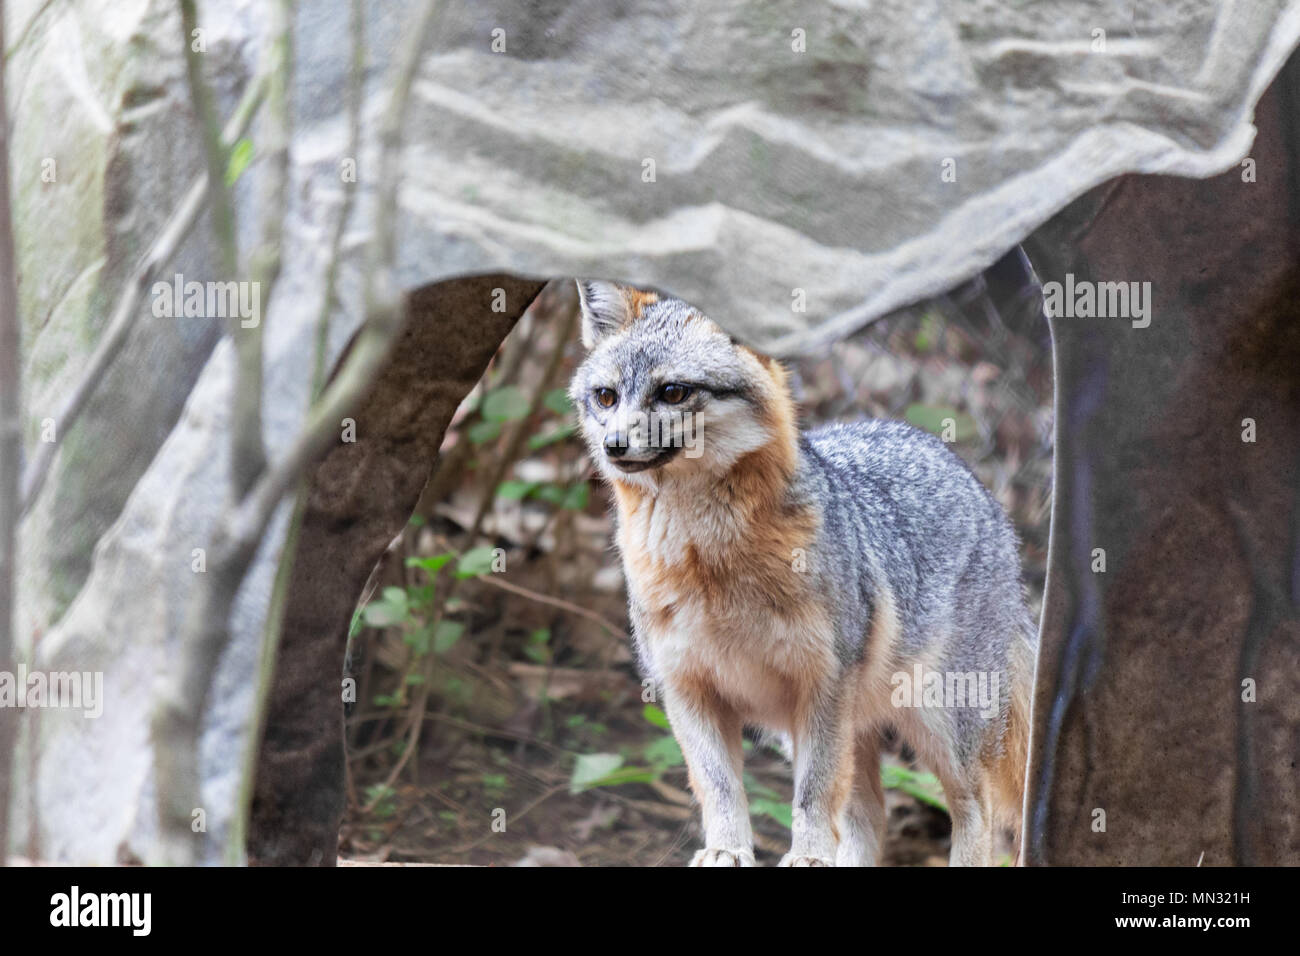 A grey fox gazes in dismay, framed through a rock opening, at the WNC Nature Center in Asheville, NC, USA - Stock Image